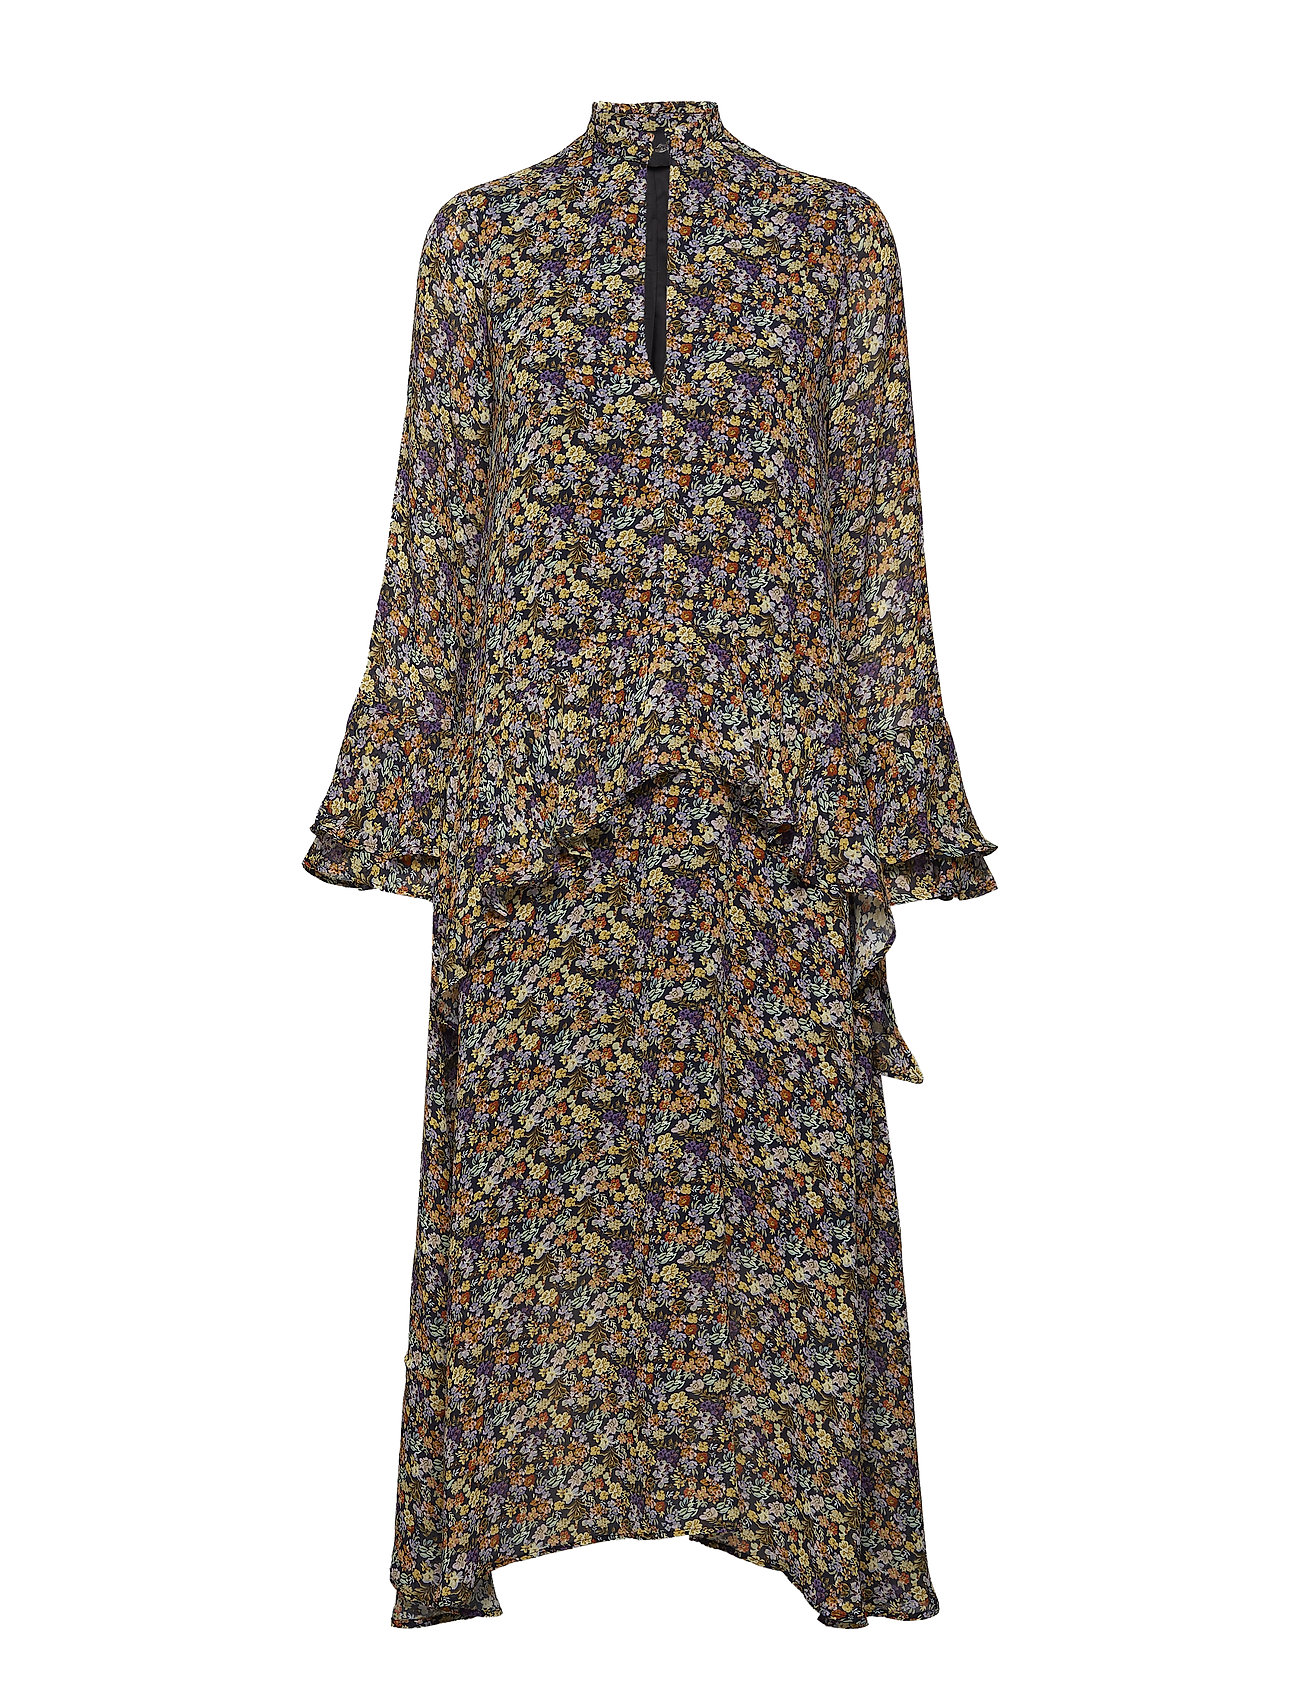 Sienna Dress - Birgitte Herskind